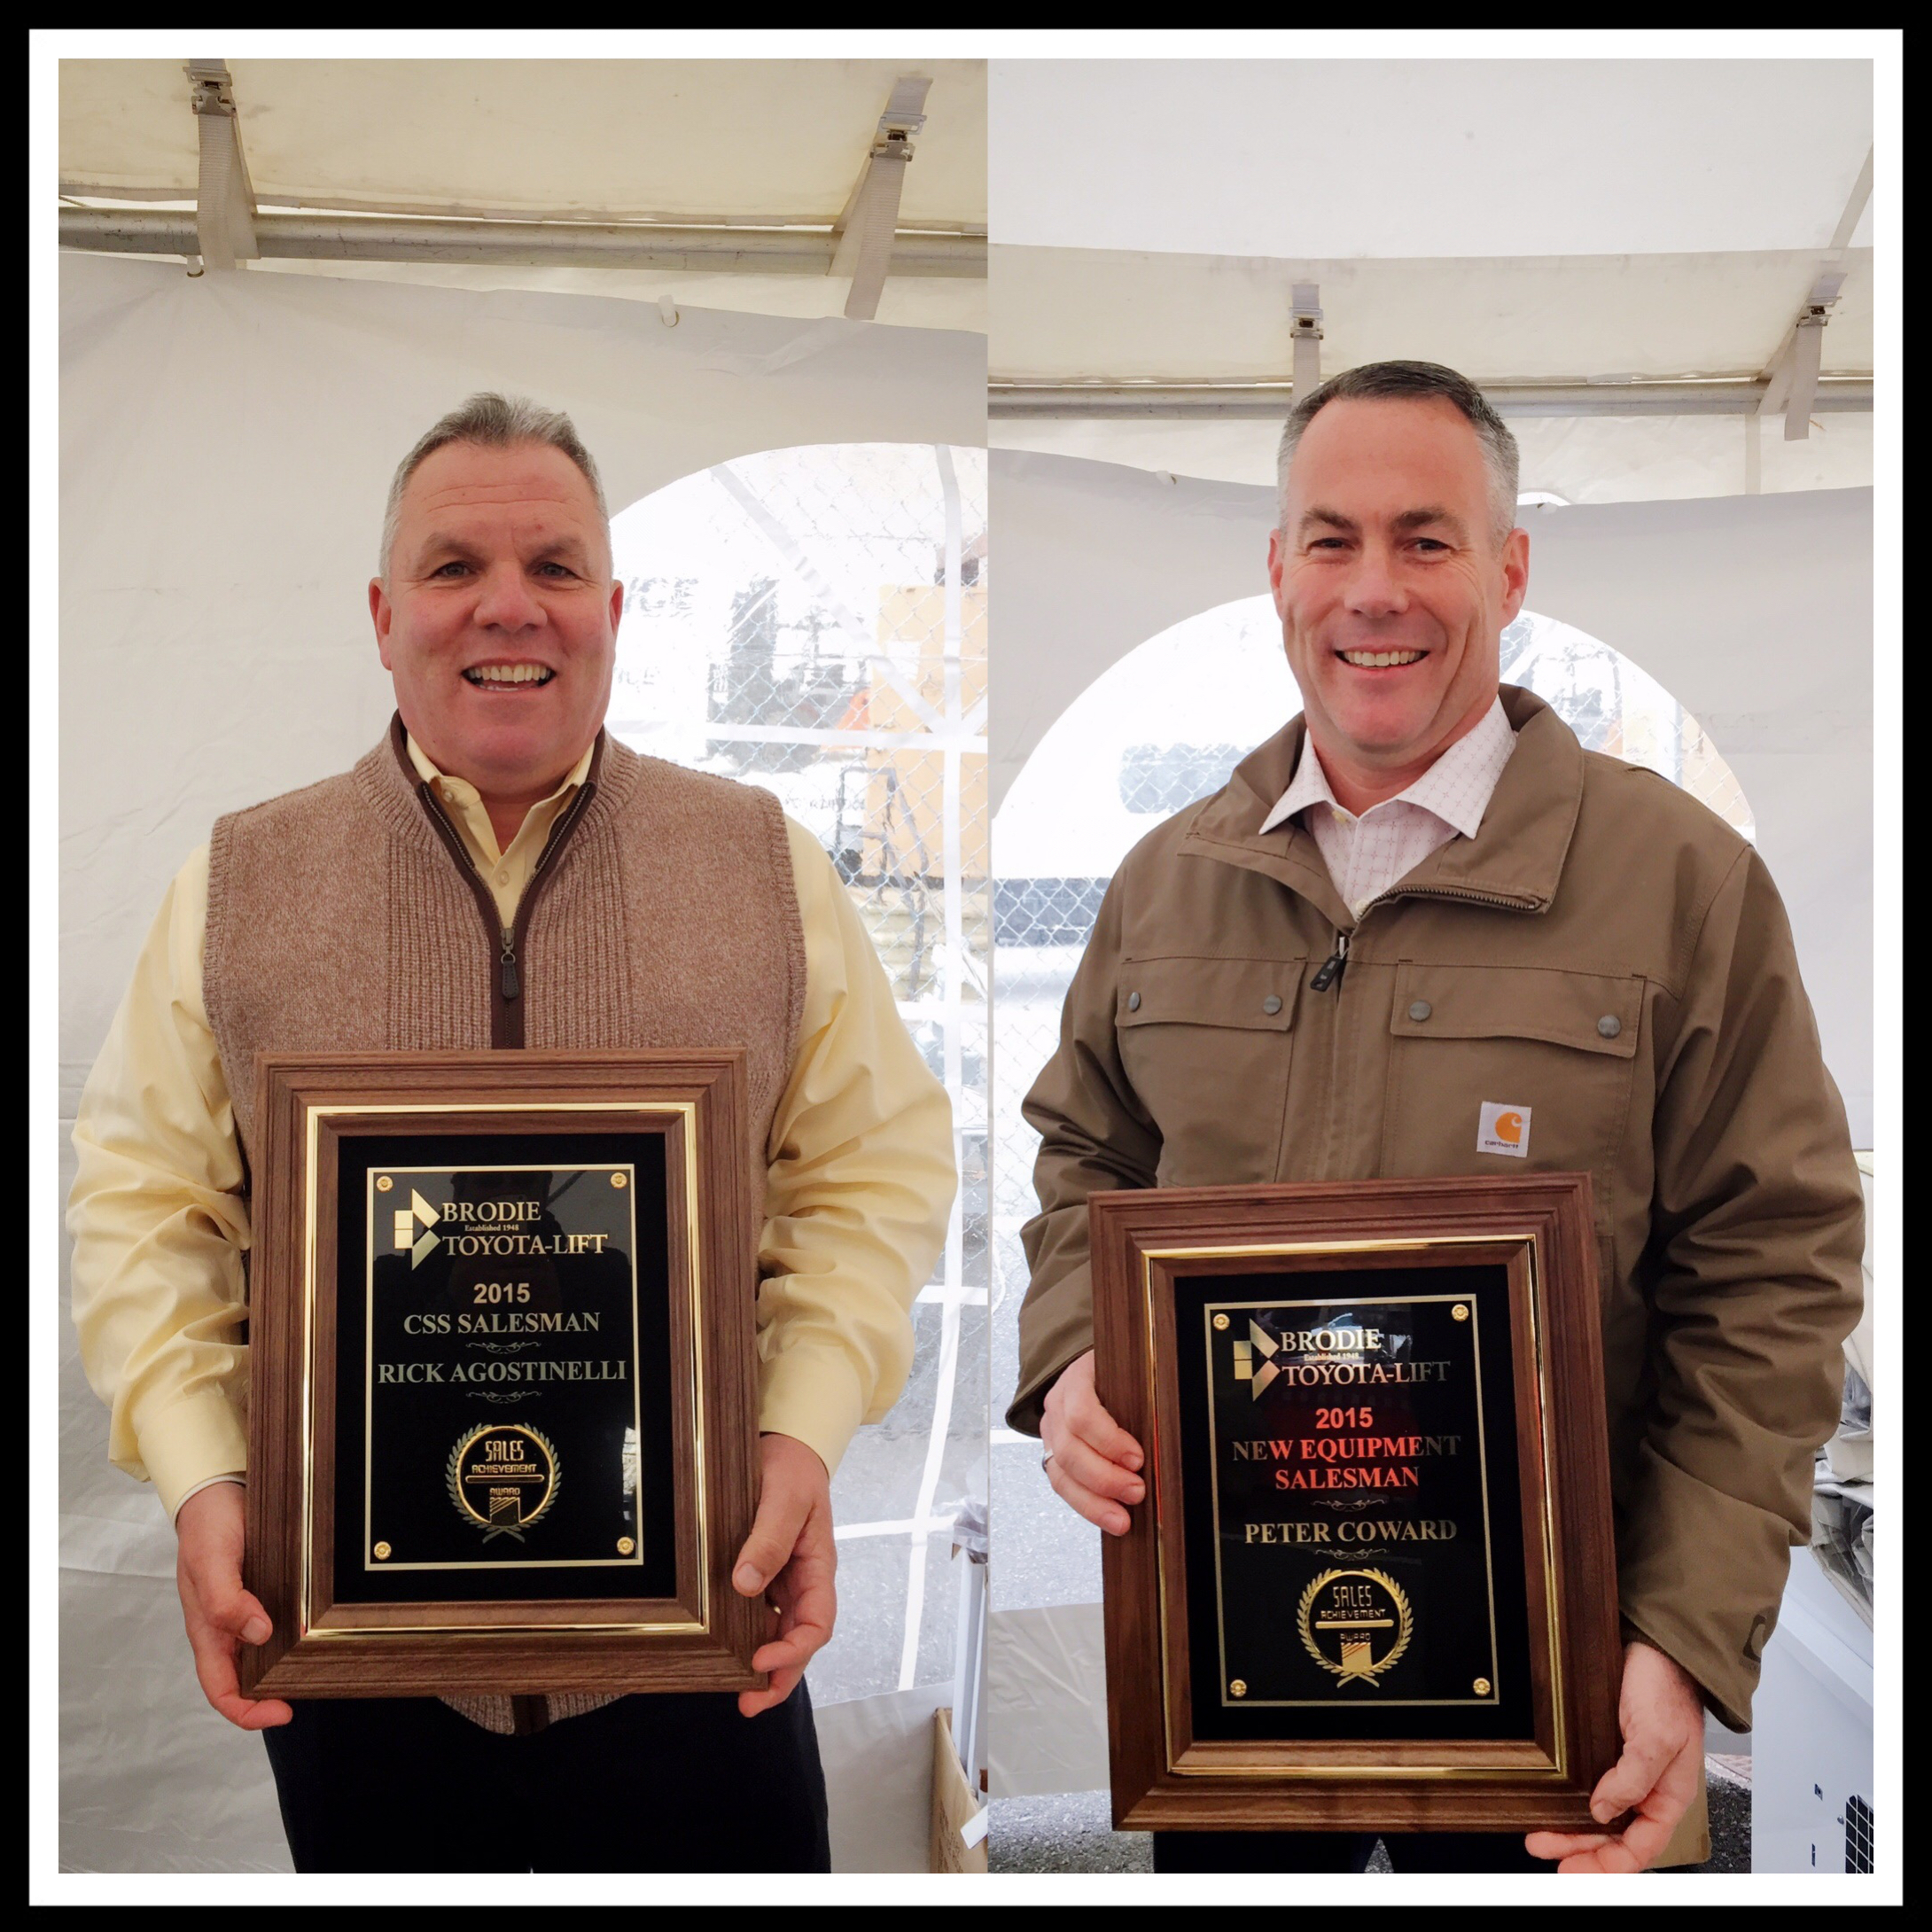 Toyota Dealers St Louis: Rick Agostinelli! & New Equipment Salesman Of The Year